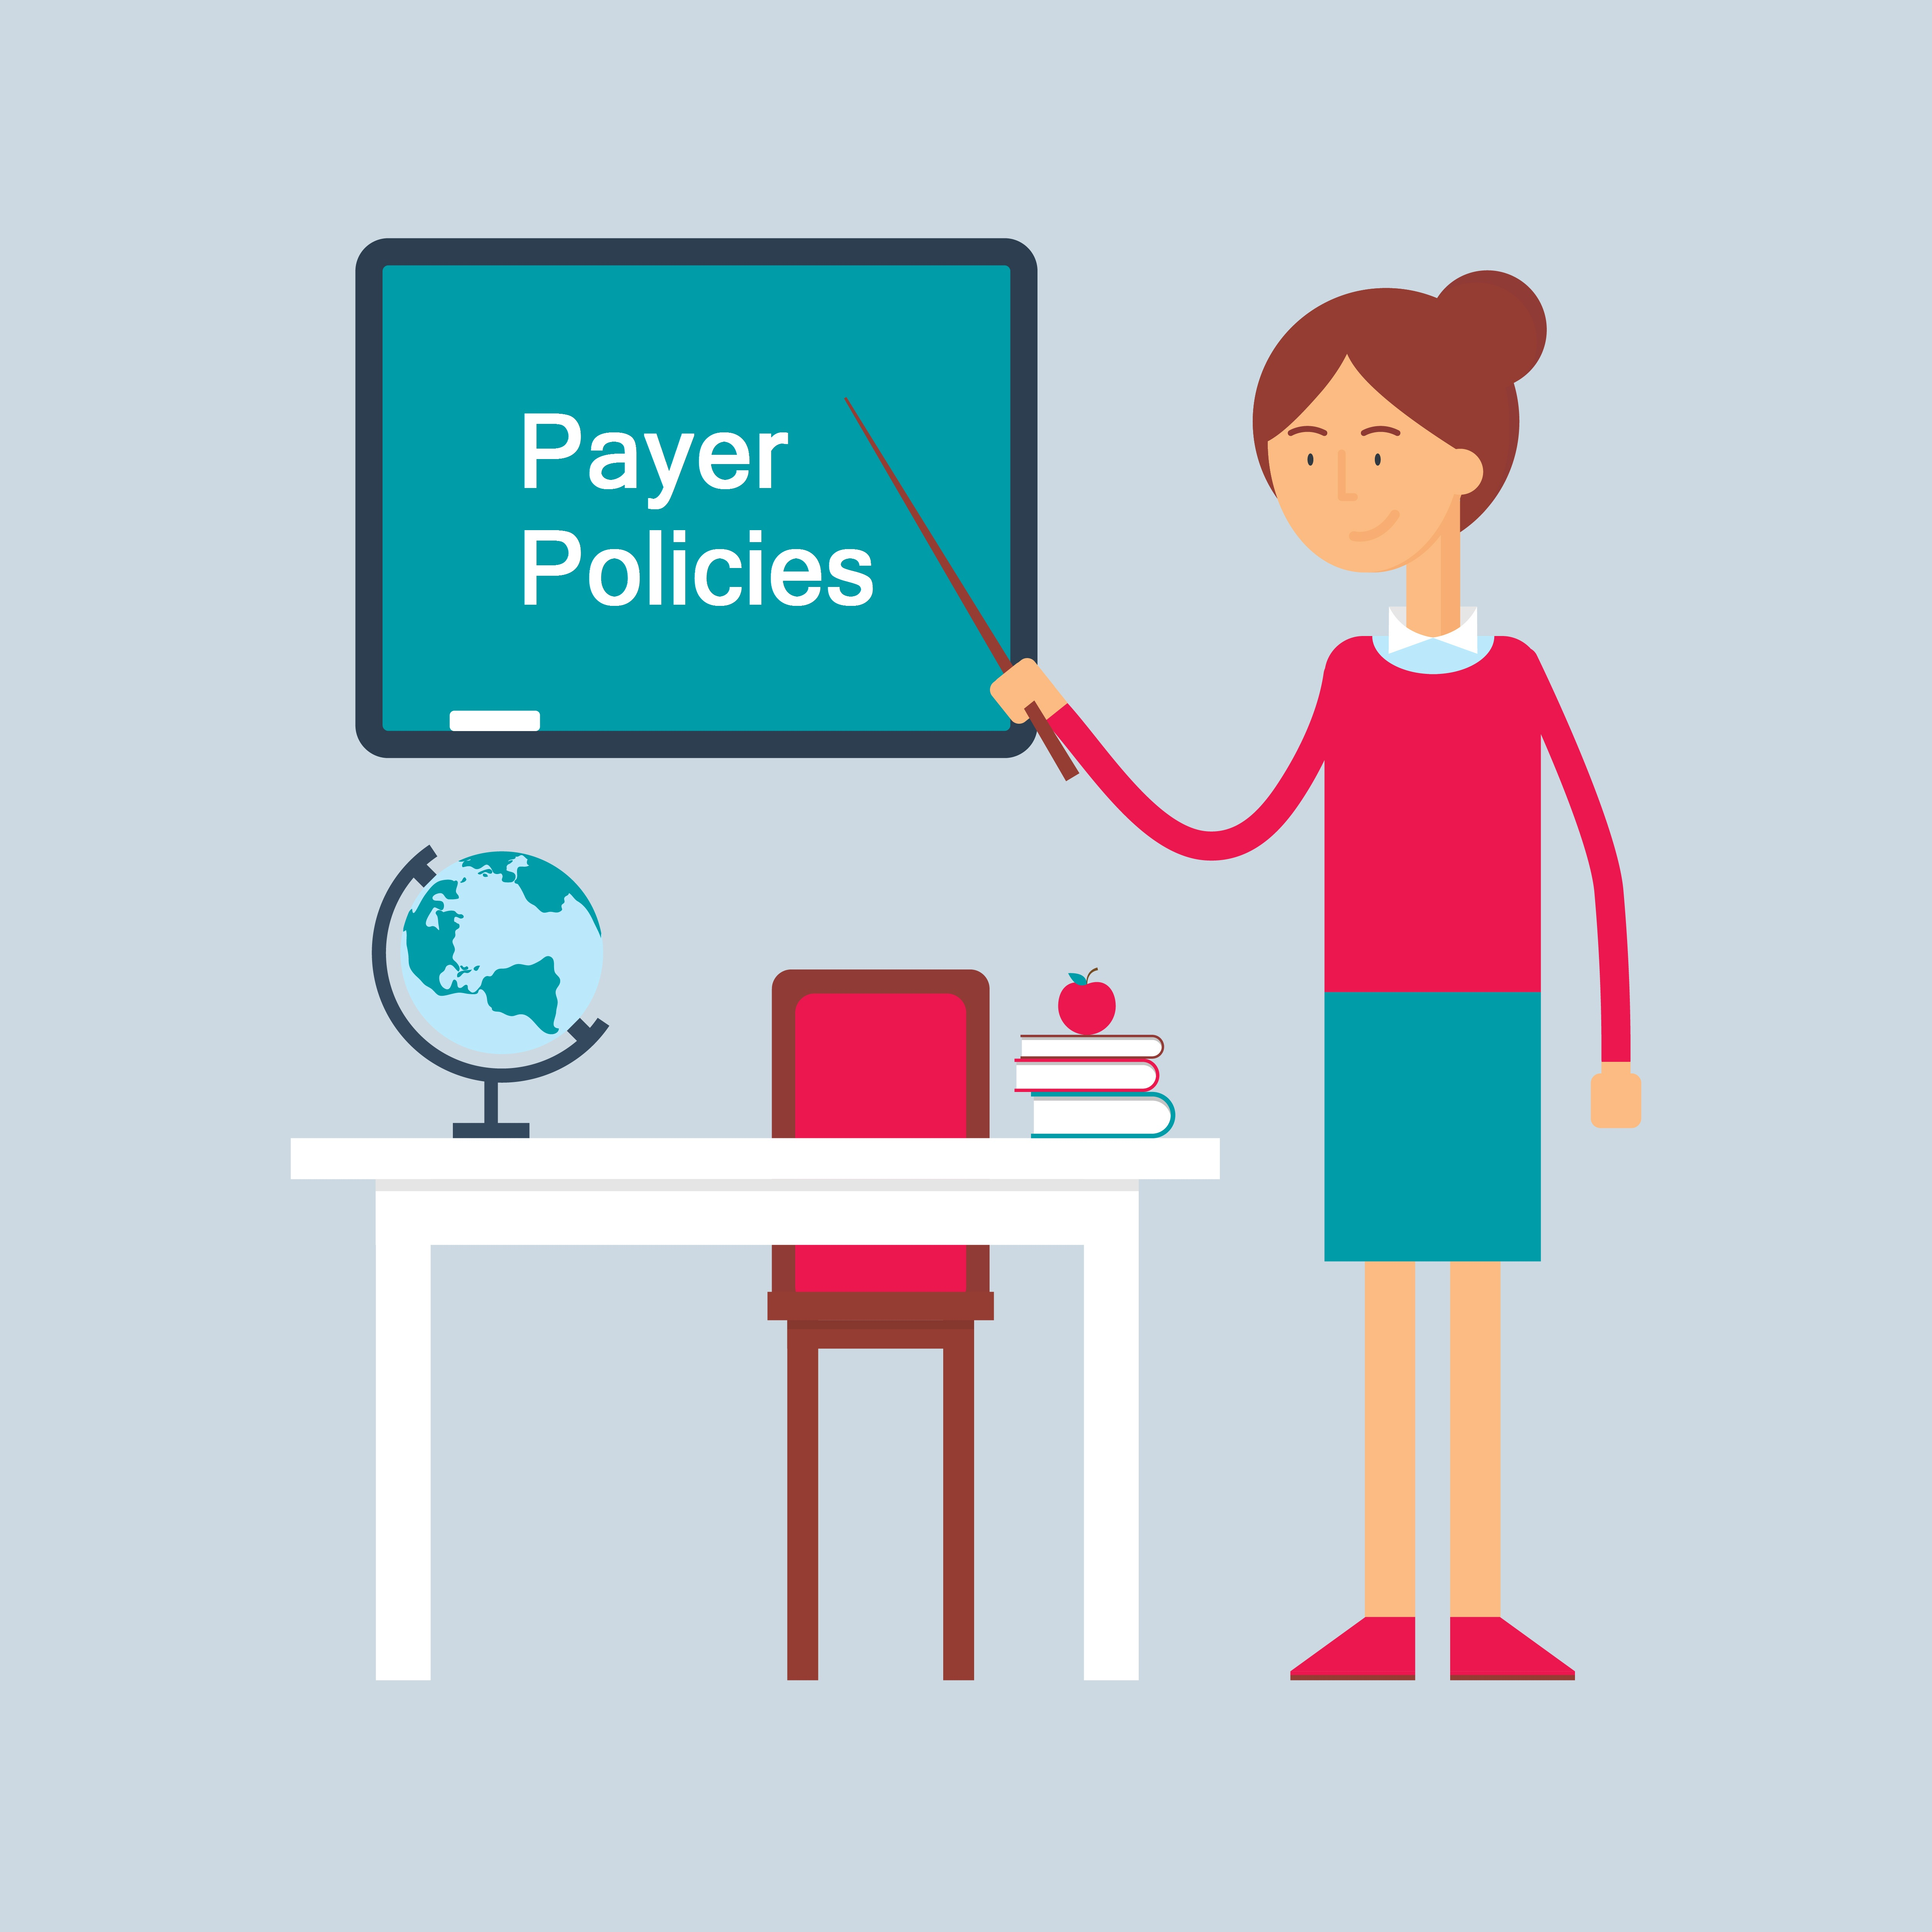 payer_policies